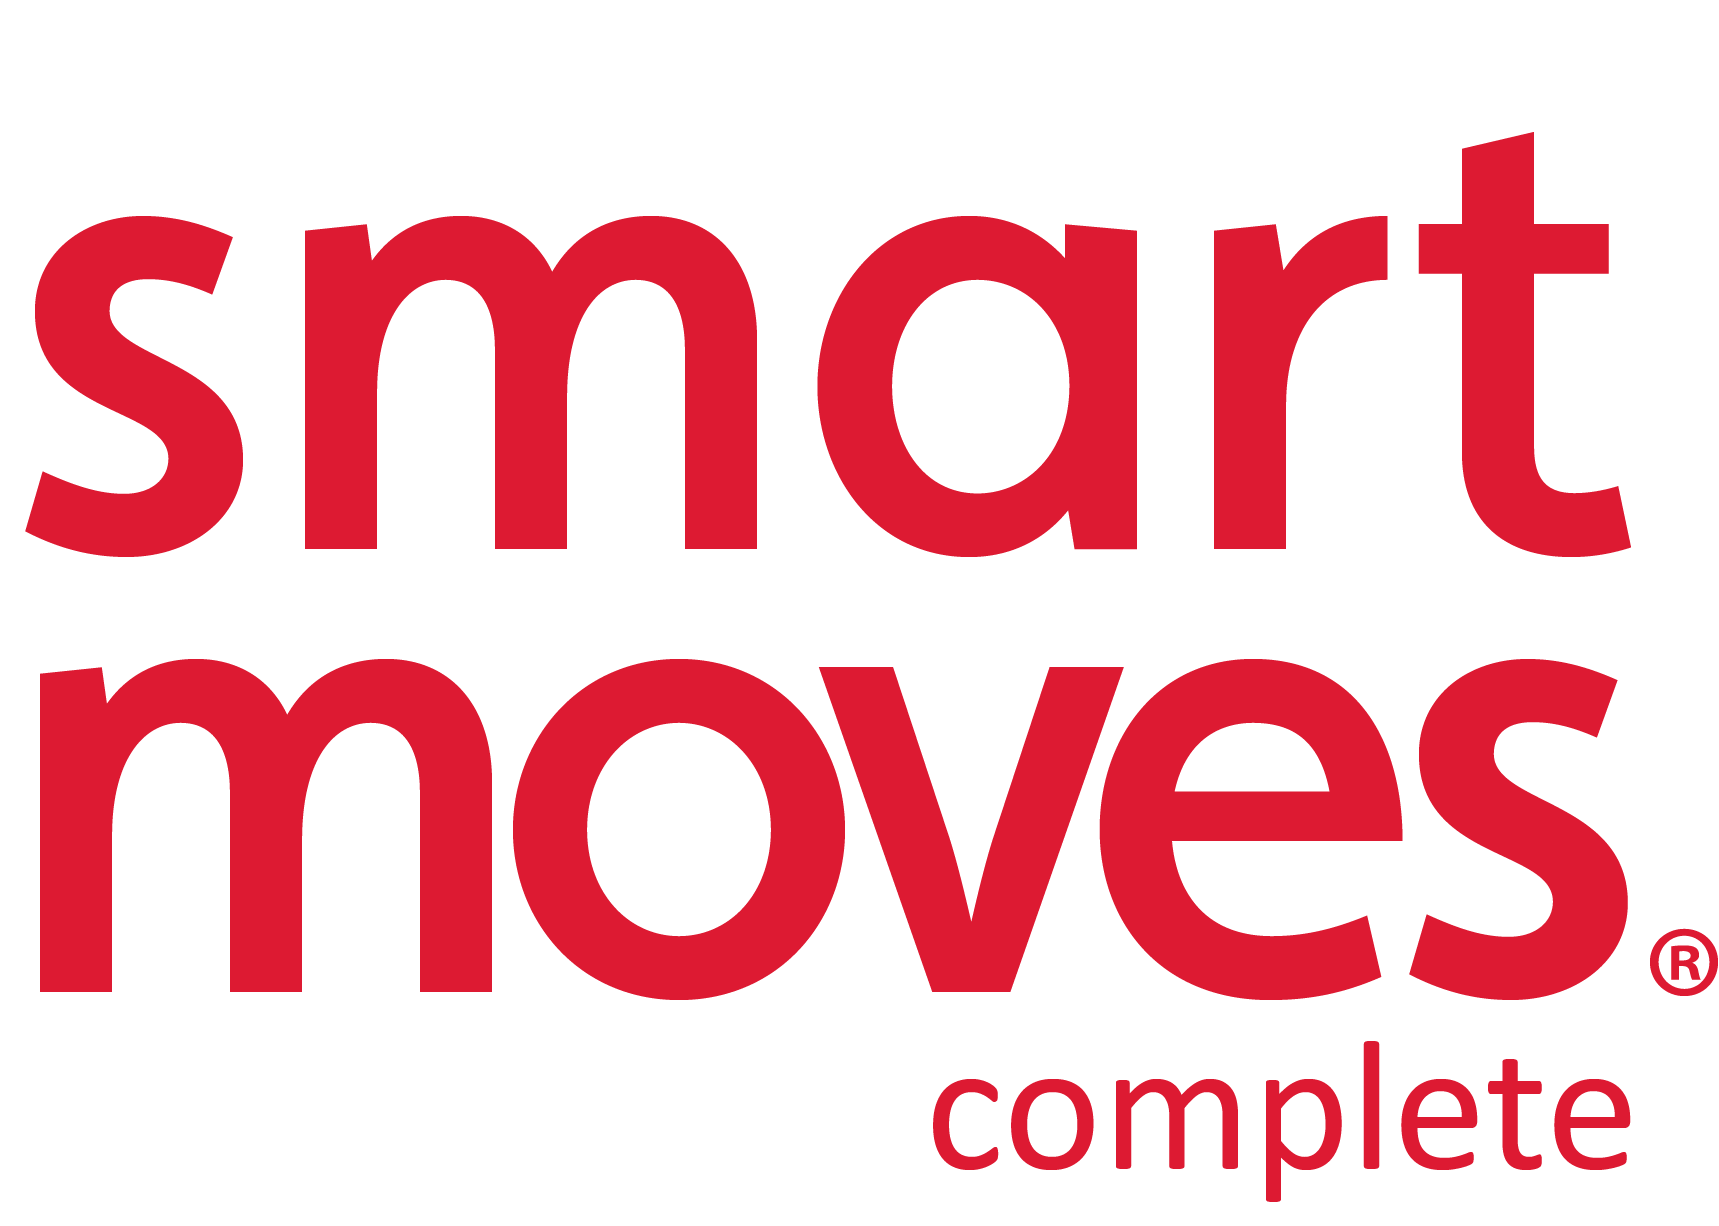 smart moves® complete